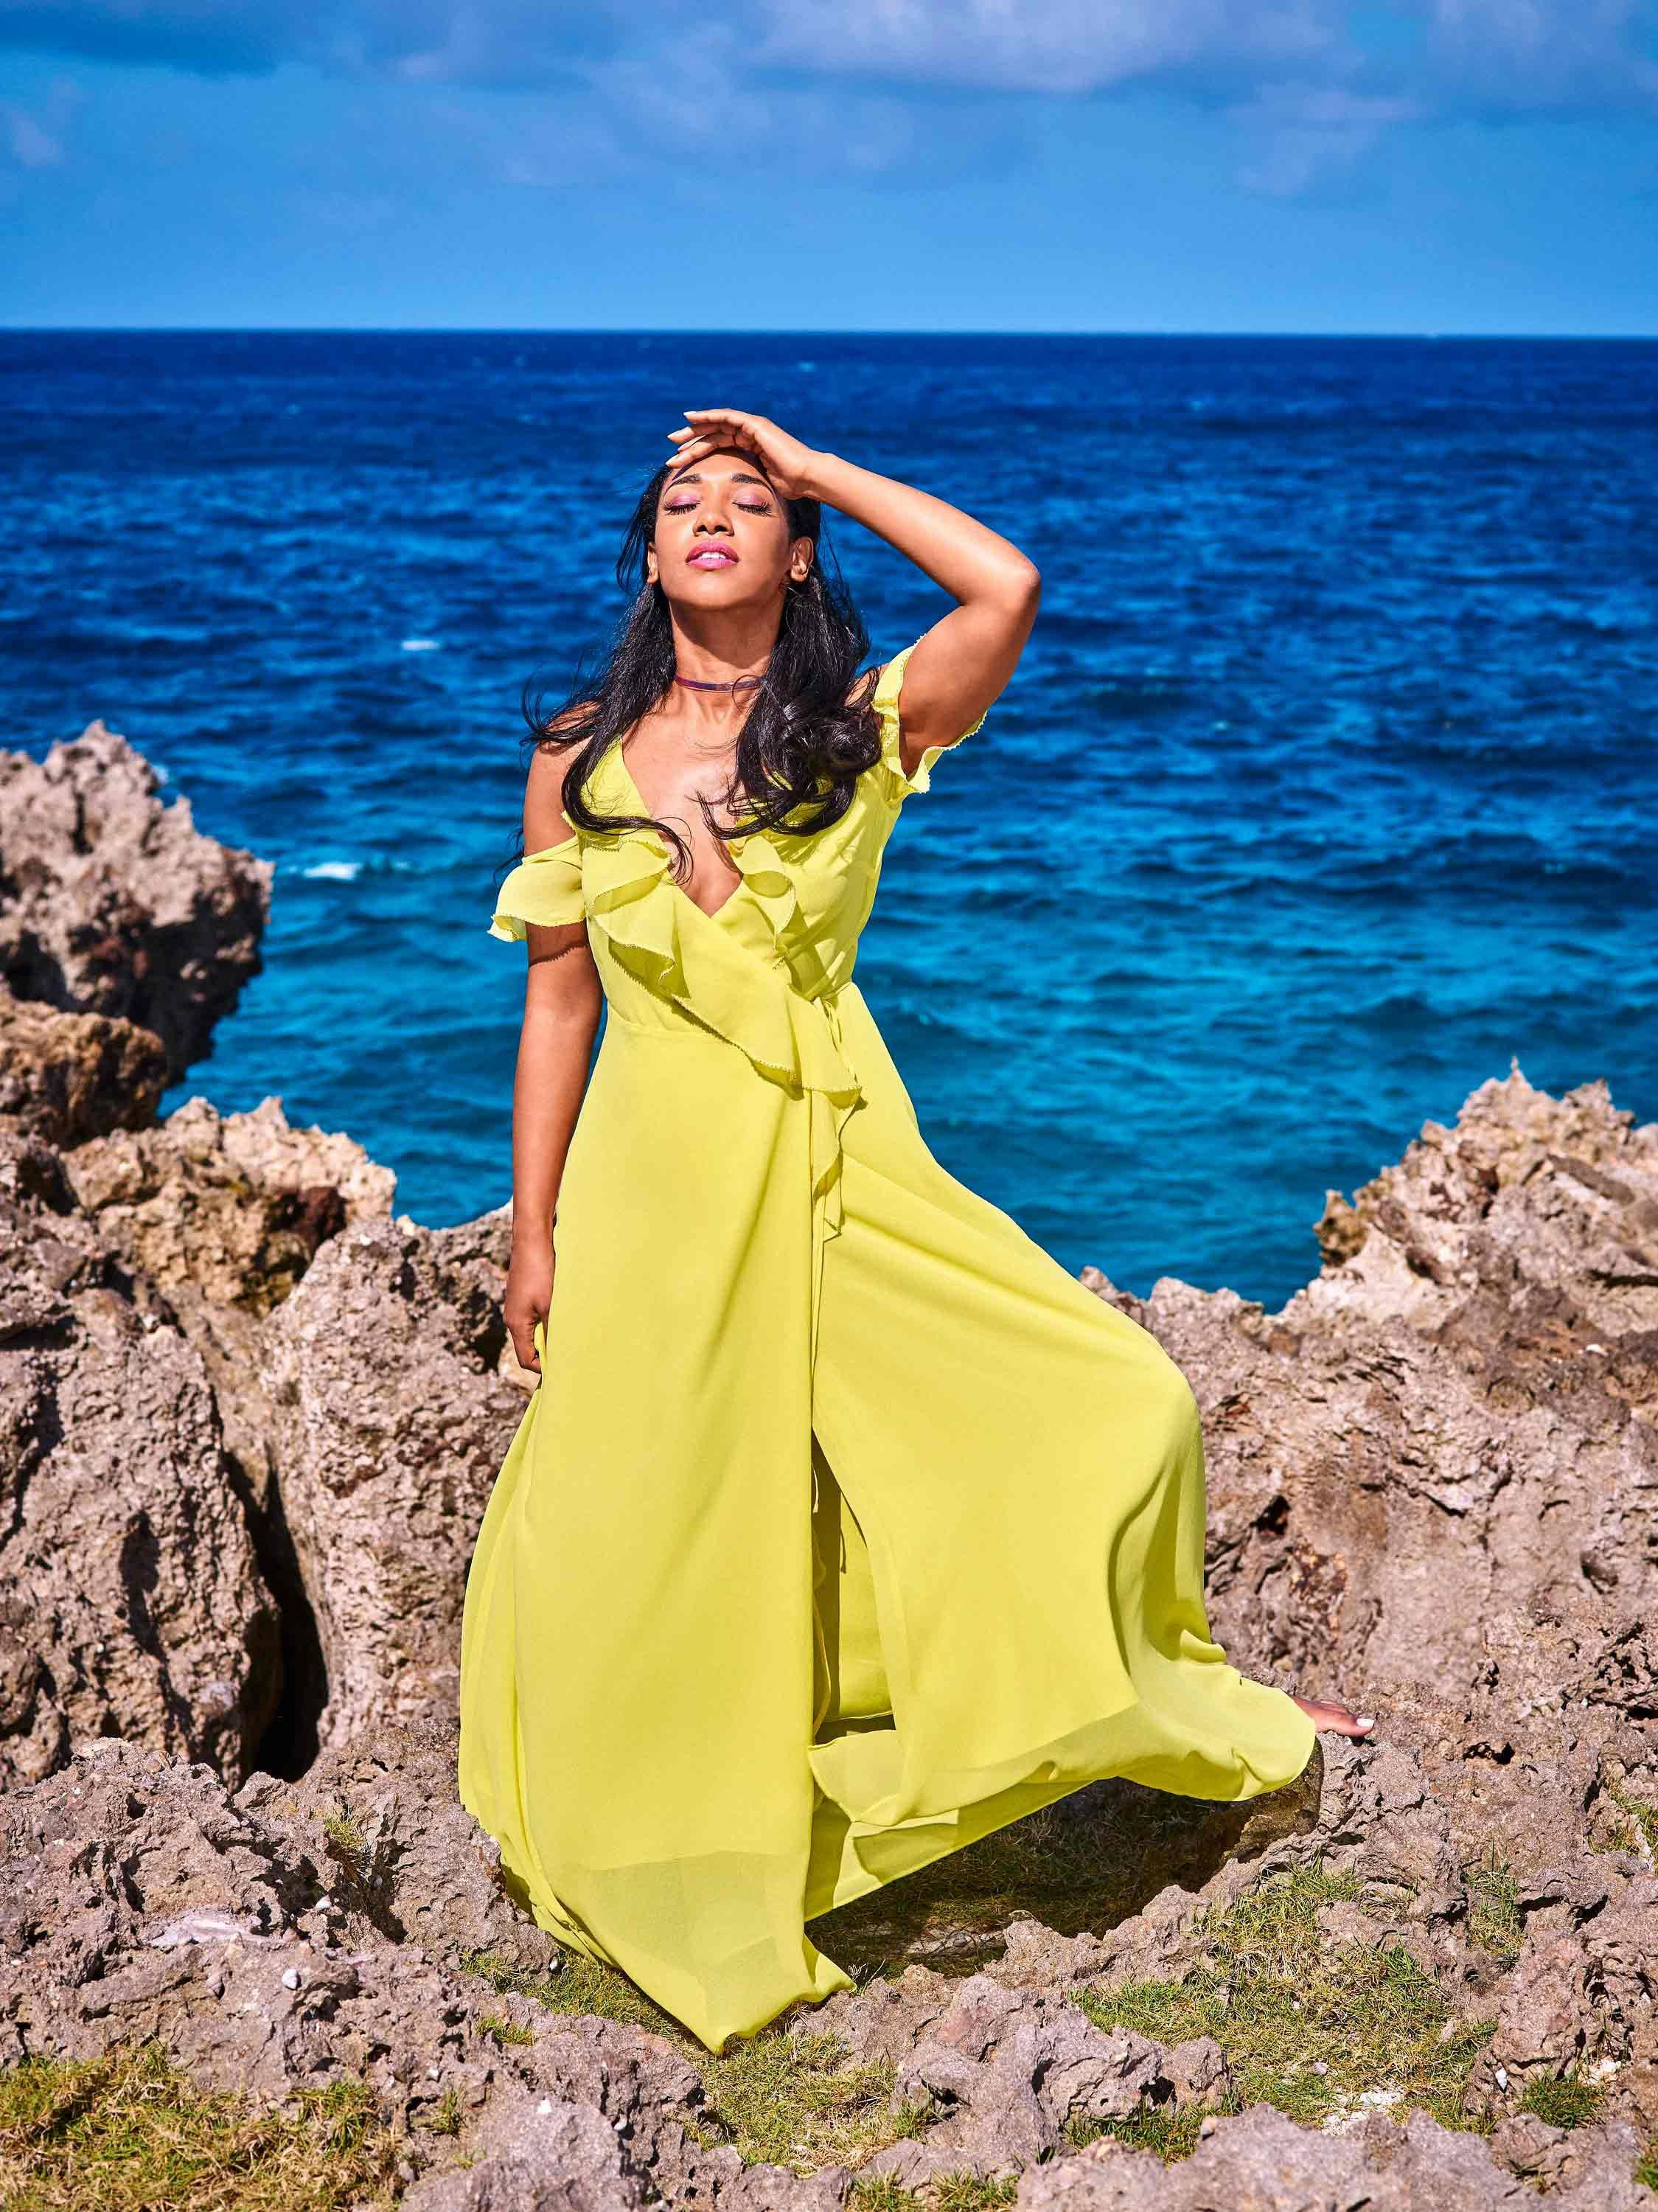 Candice Patton in a neon yellow ruffled dress at the edge of the ocean